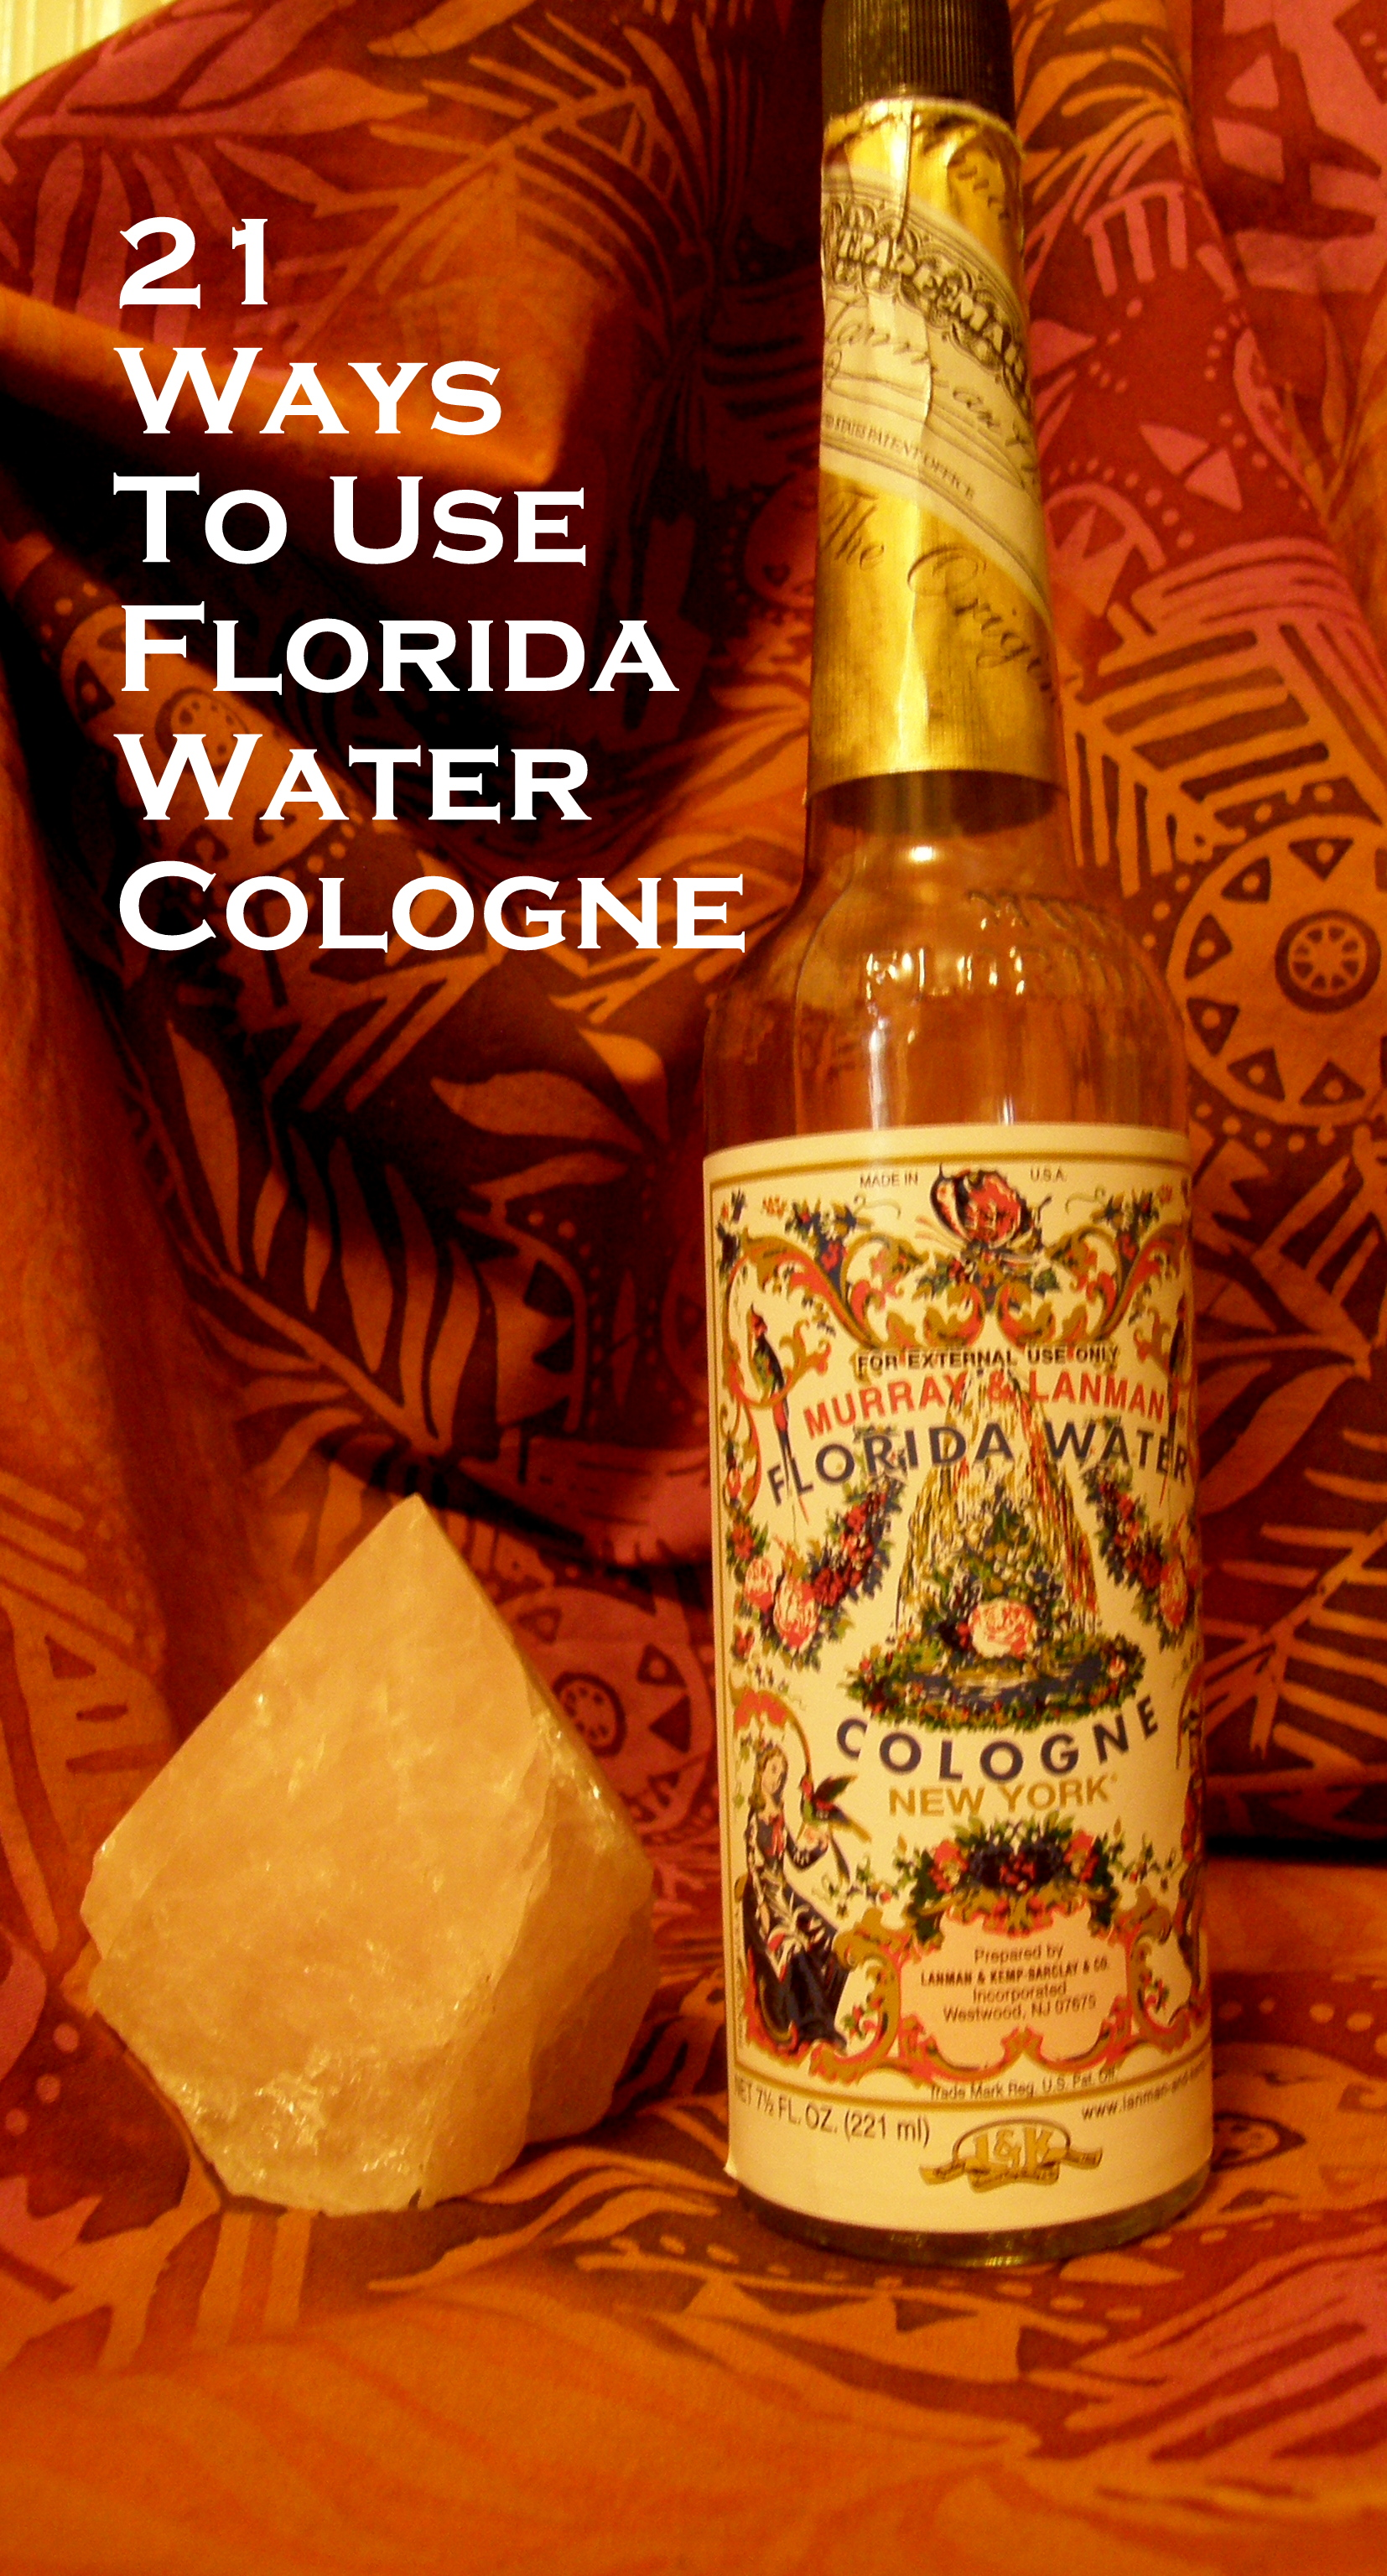 21 Wonderful Ways to Use Florida Water Cologne | Lilith Dorsey